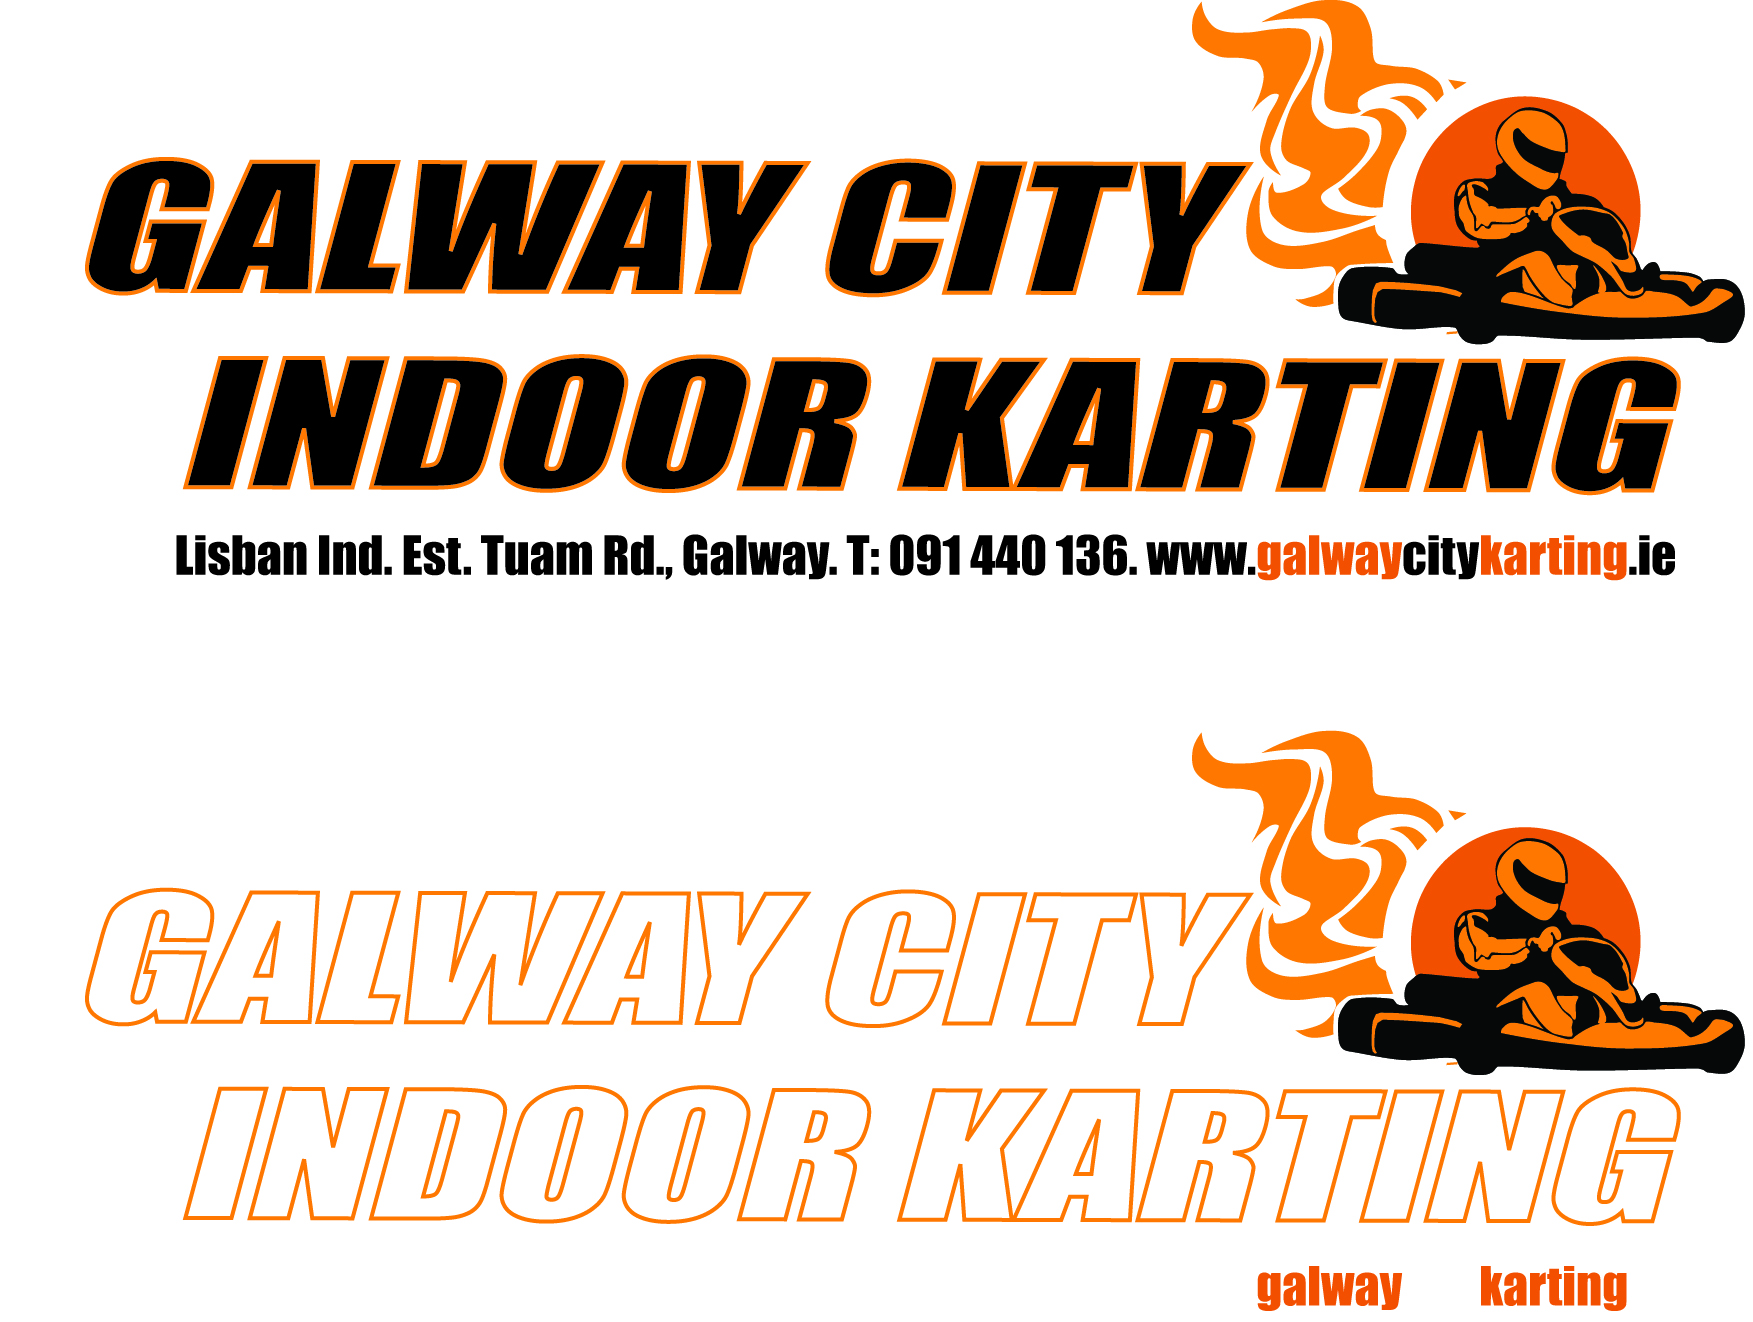 Galway City Indoor Karting